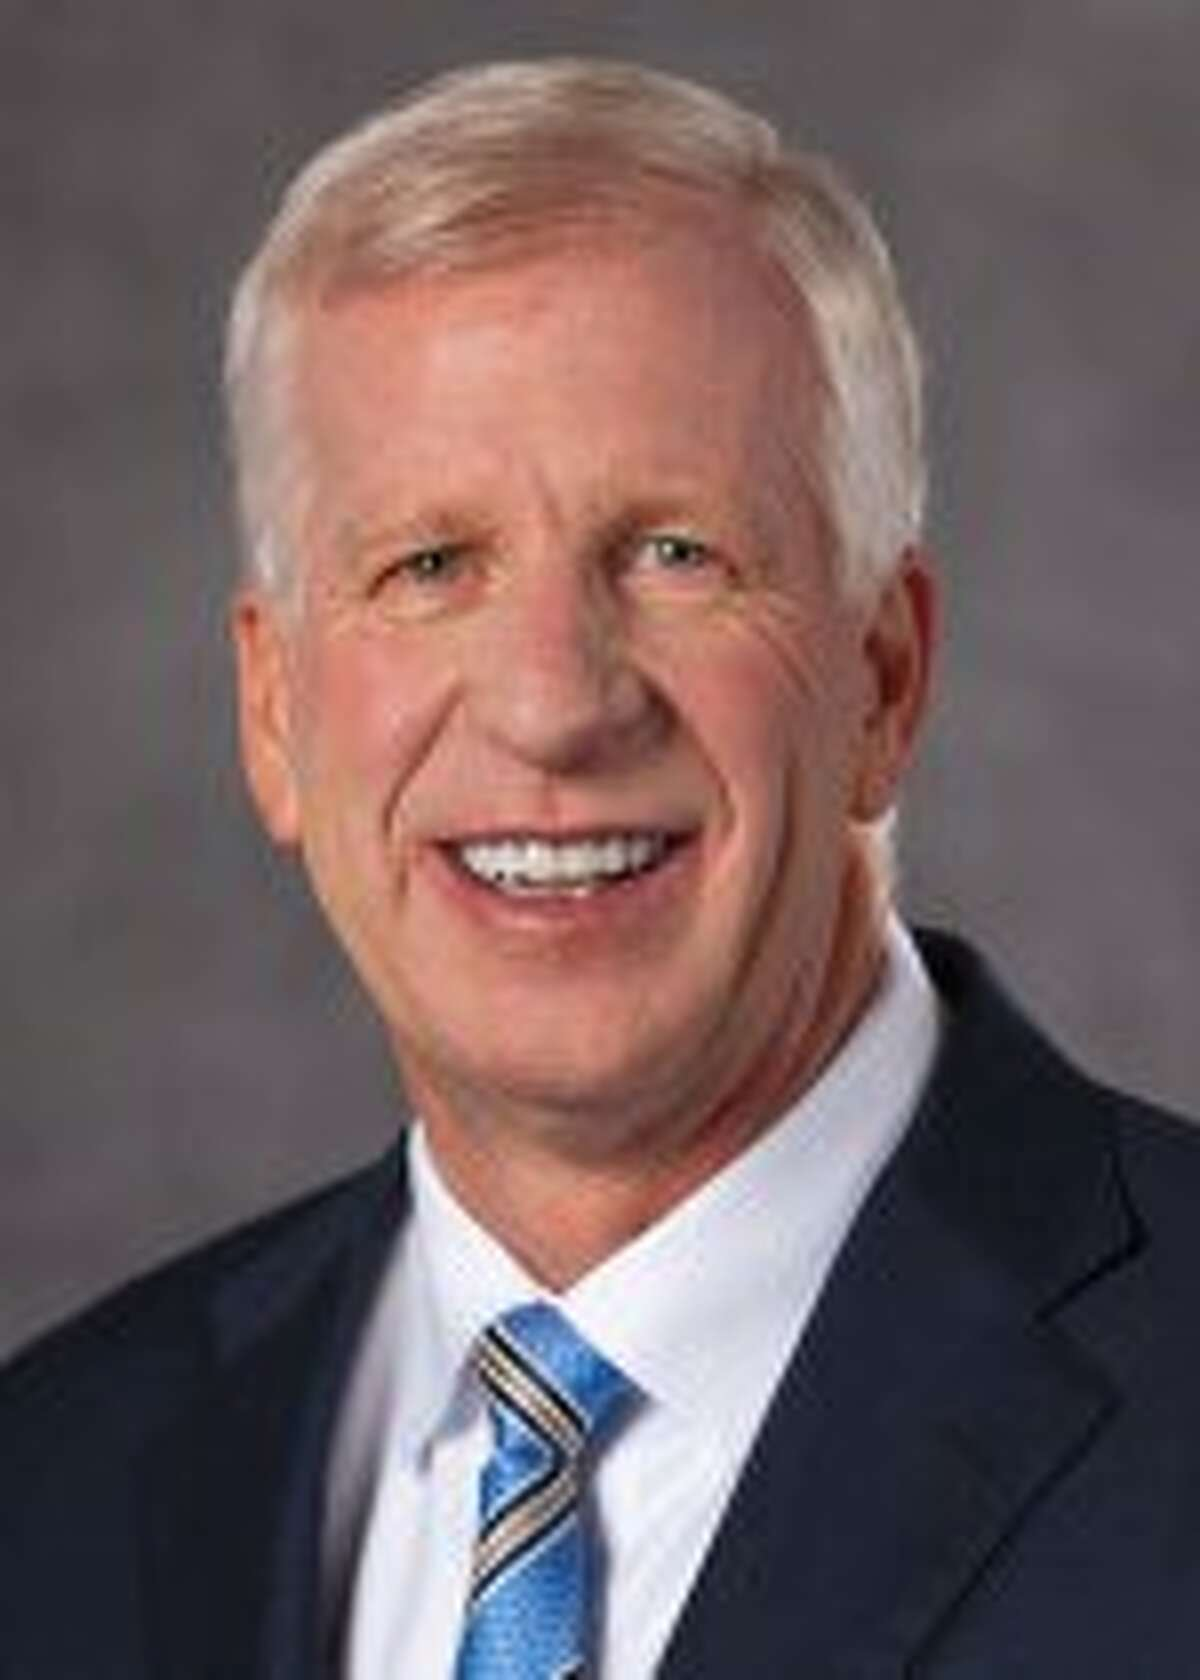 Dave Hager, president and chief executive officer of Devon Energy